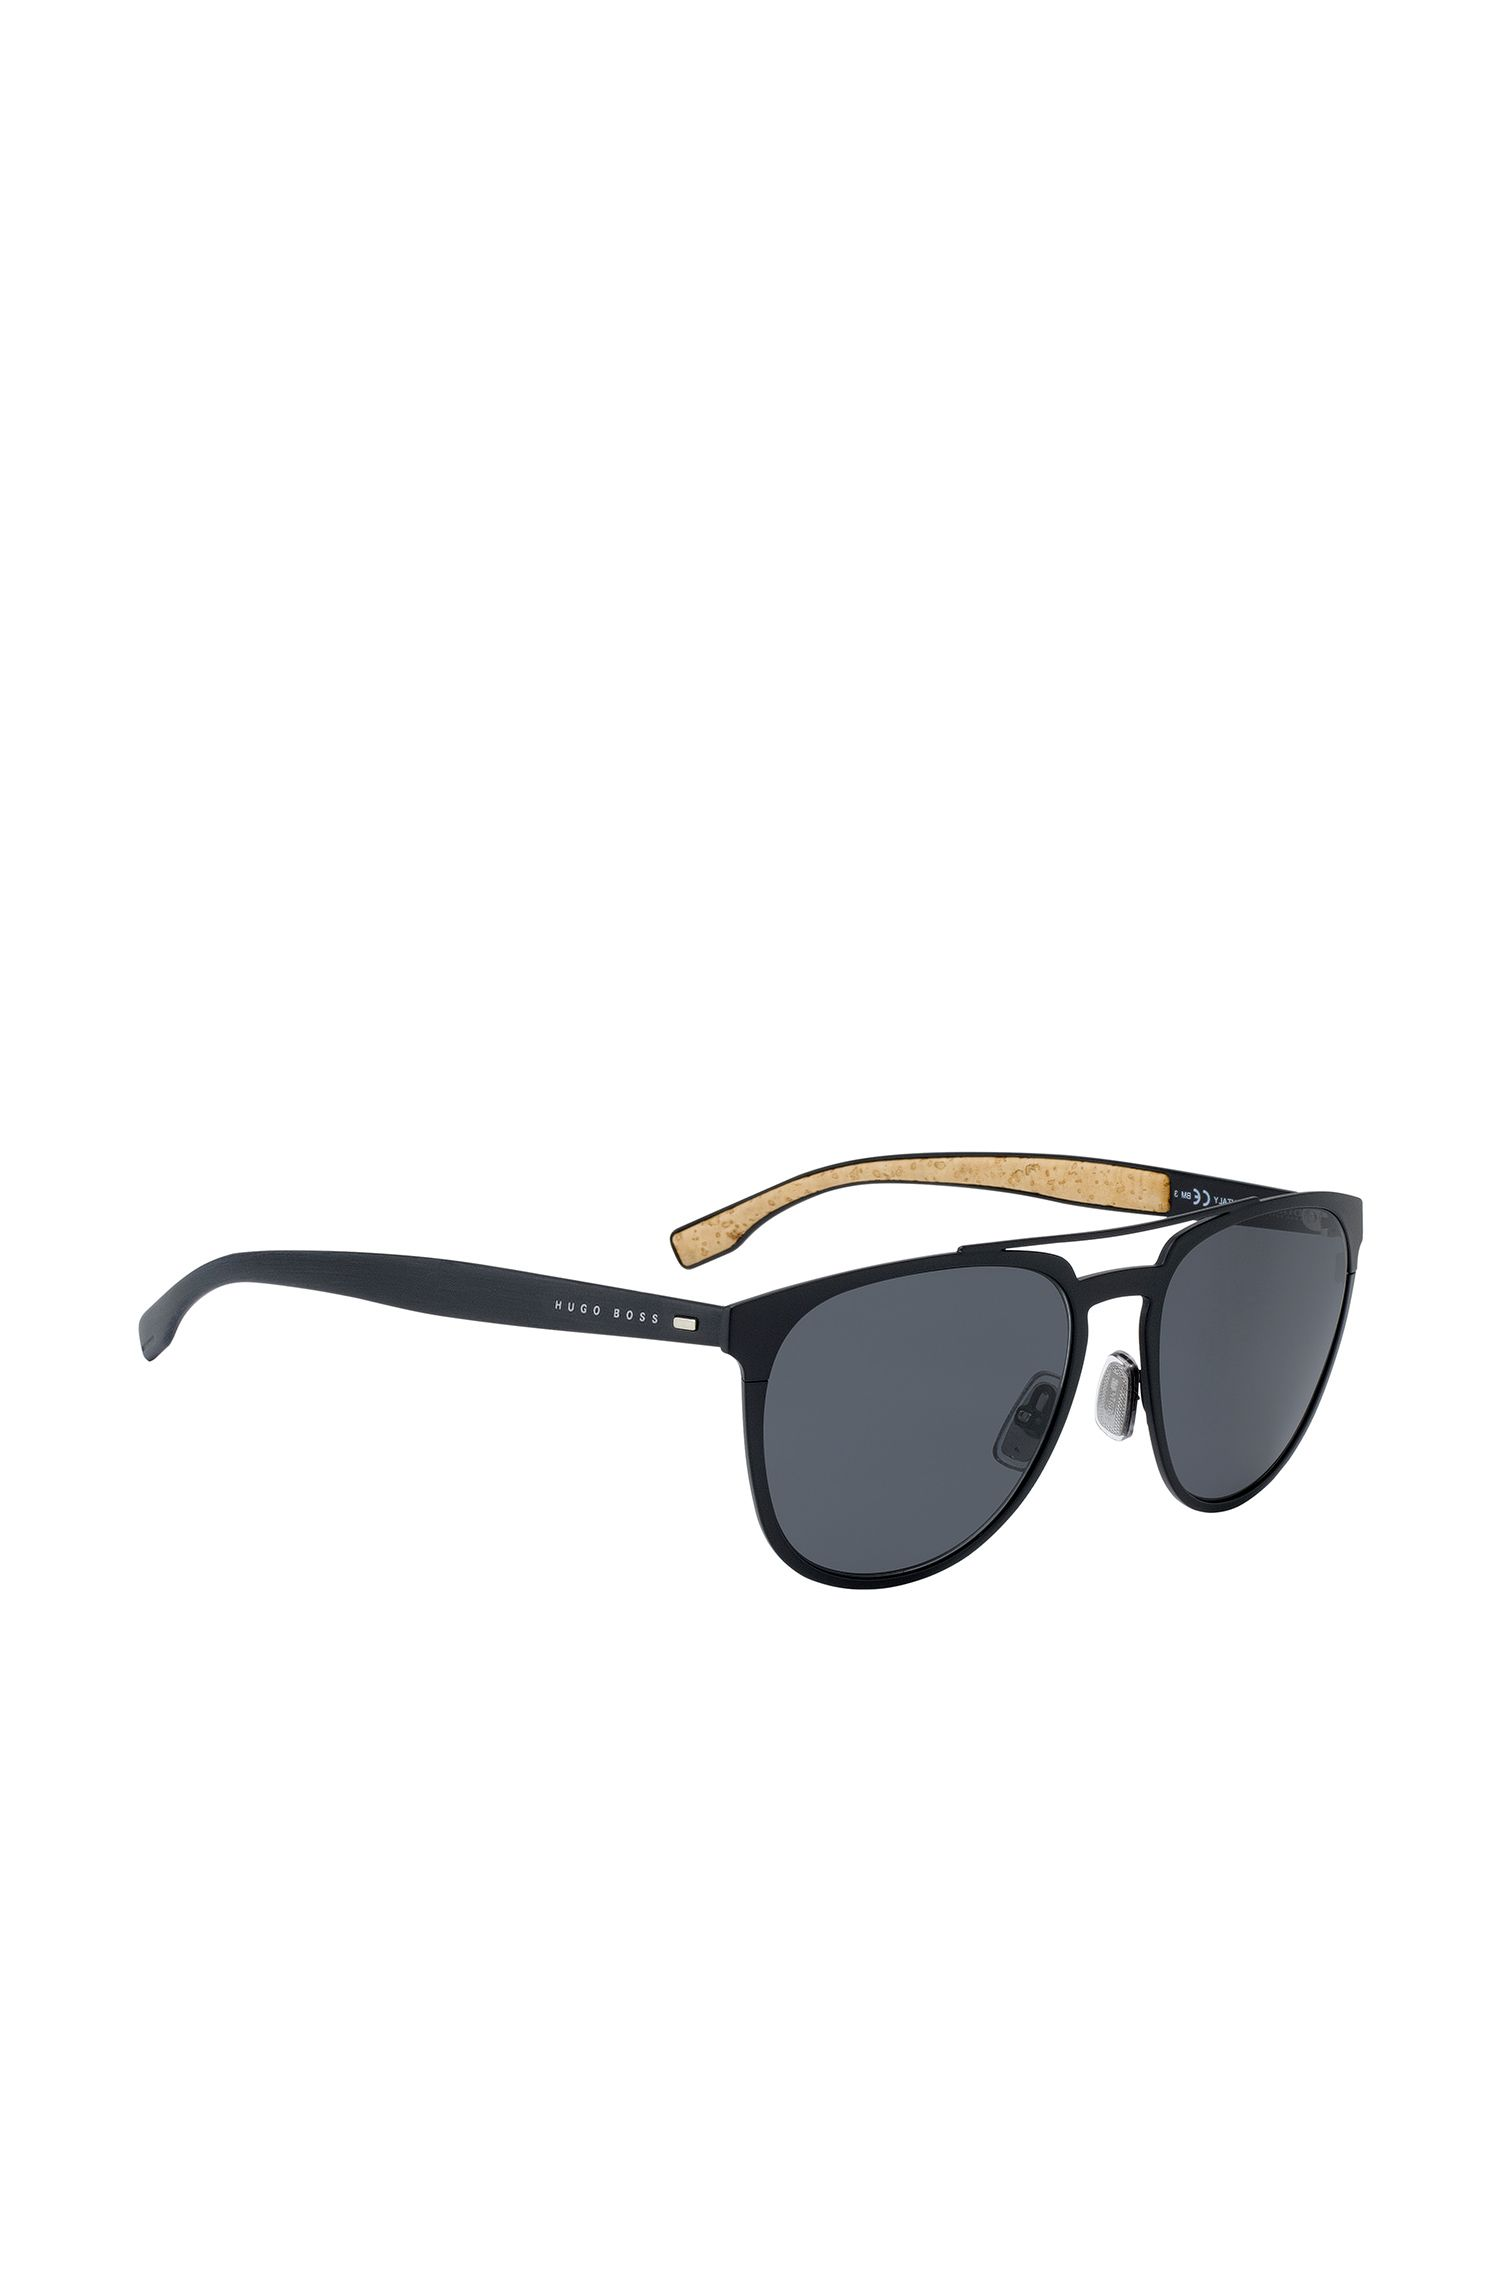 Aviator sunglasses with thin black metallic frames